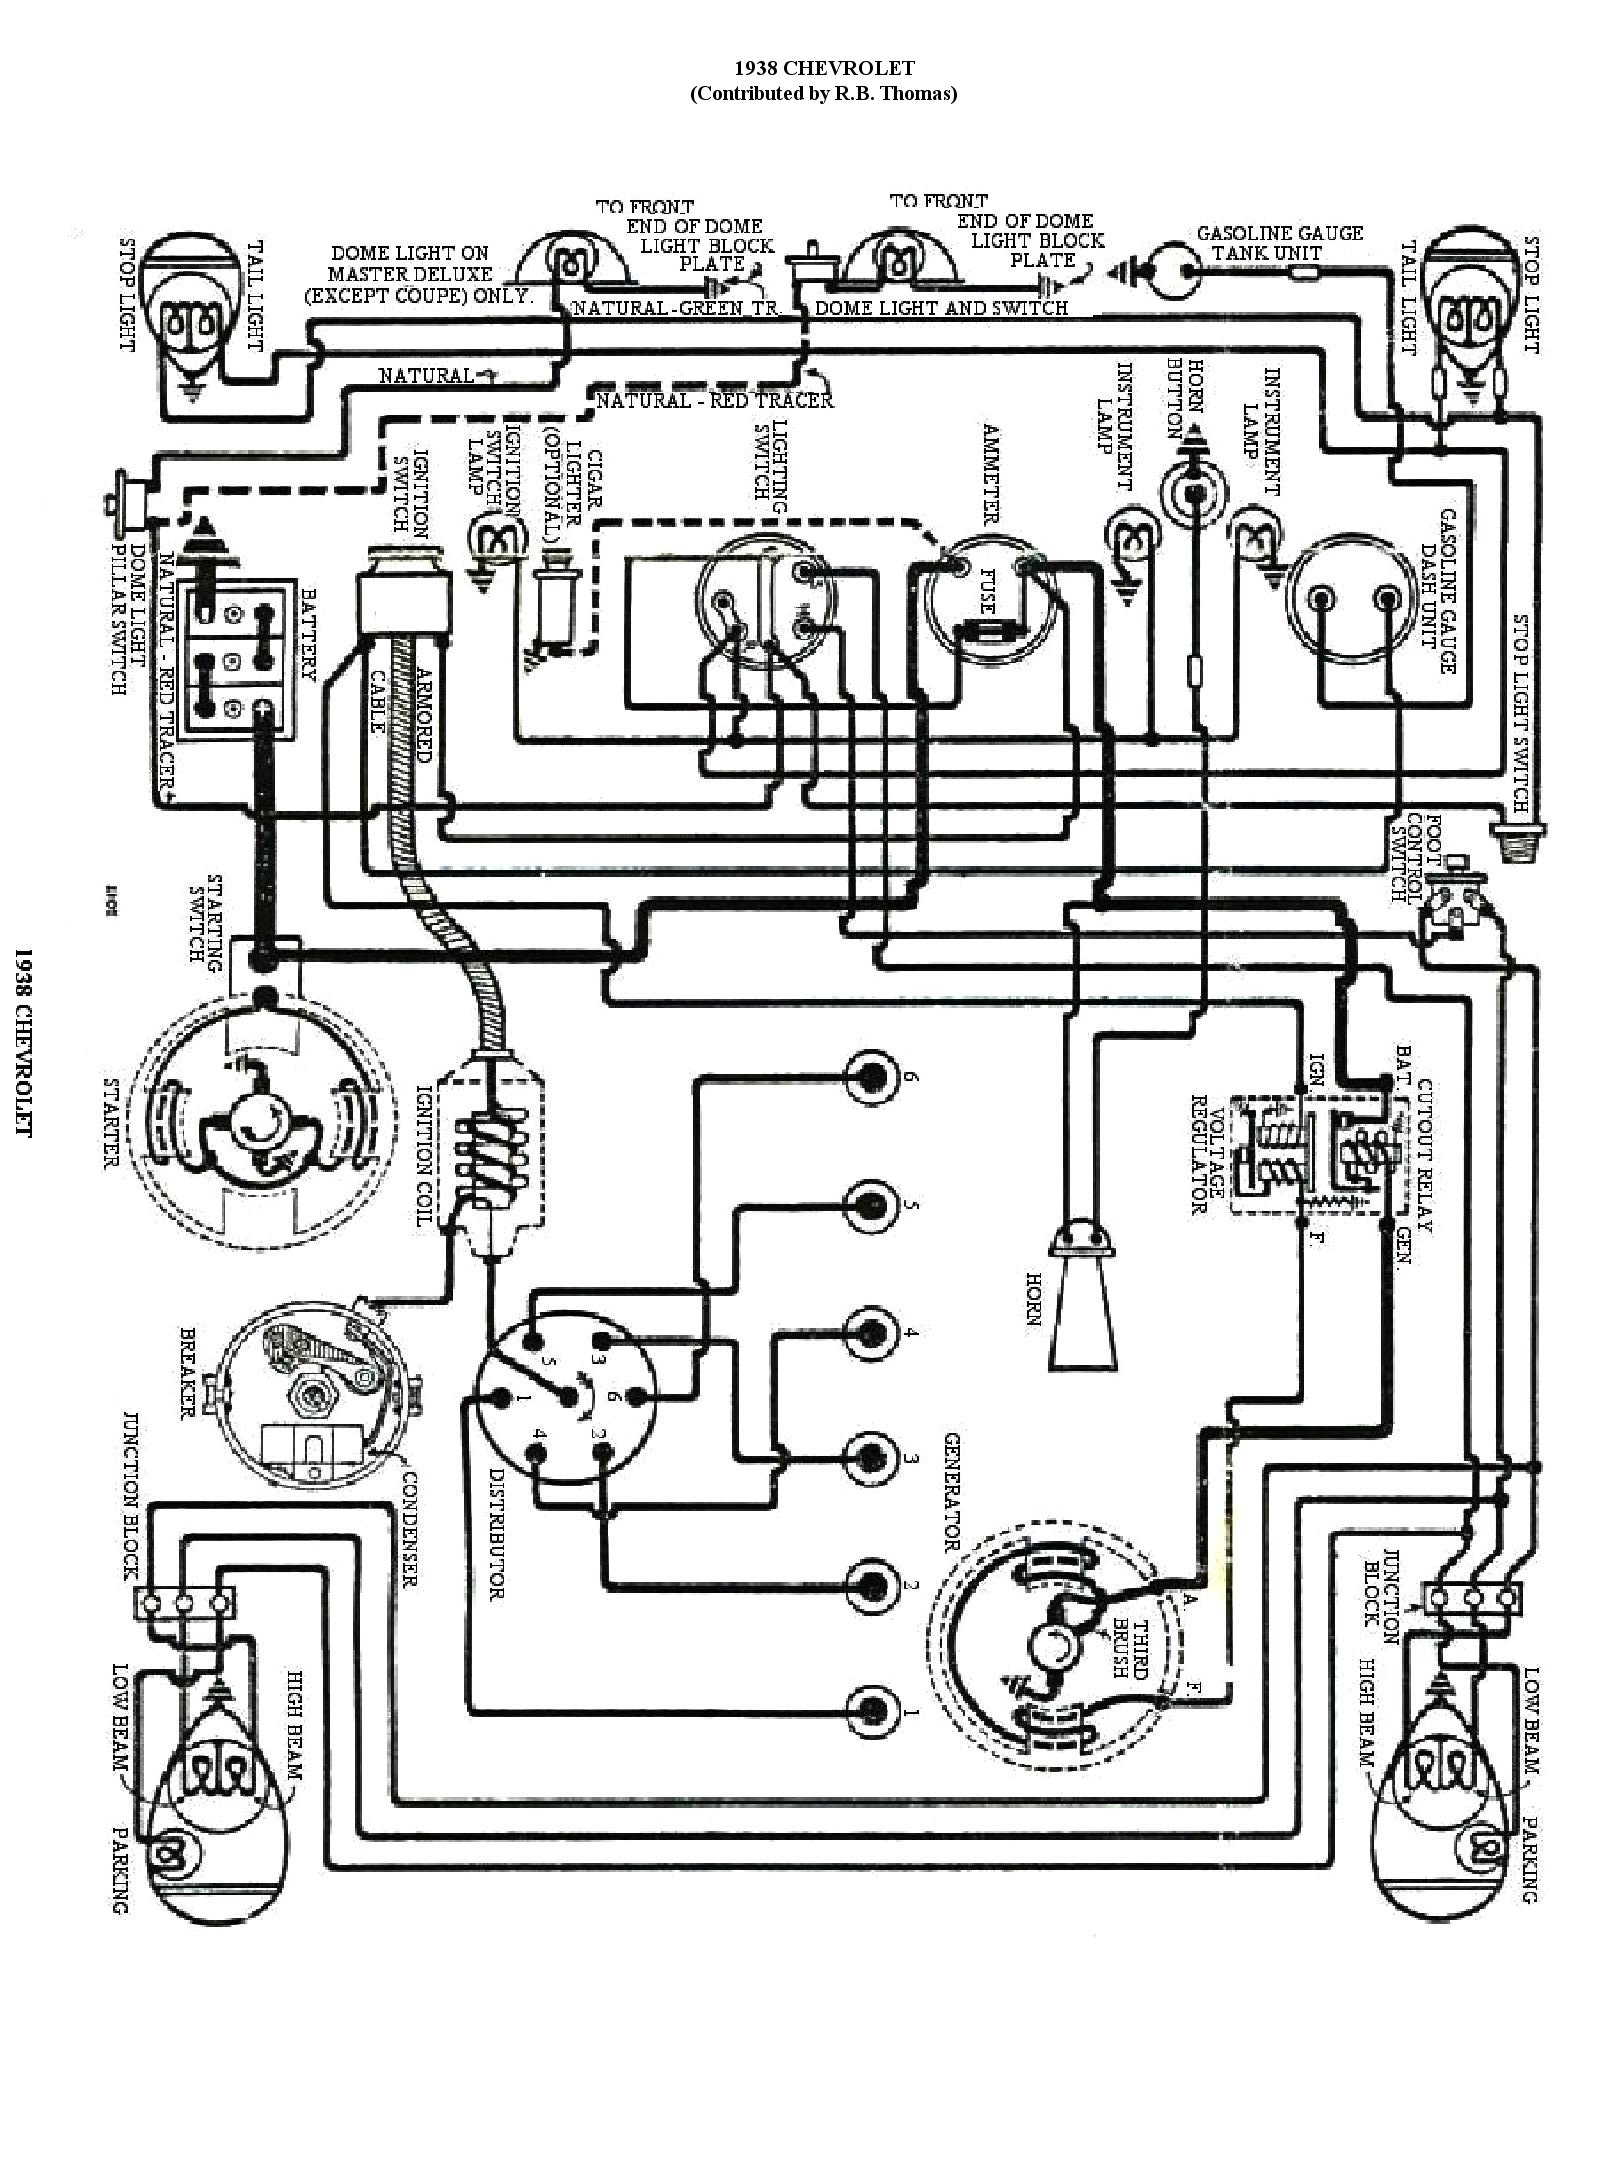 55 Chevy Belair Wiring Diagram Free Picture